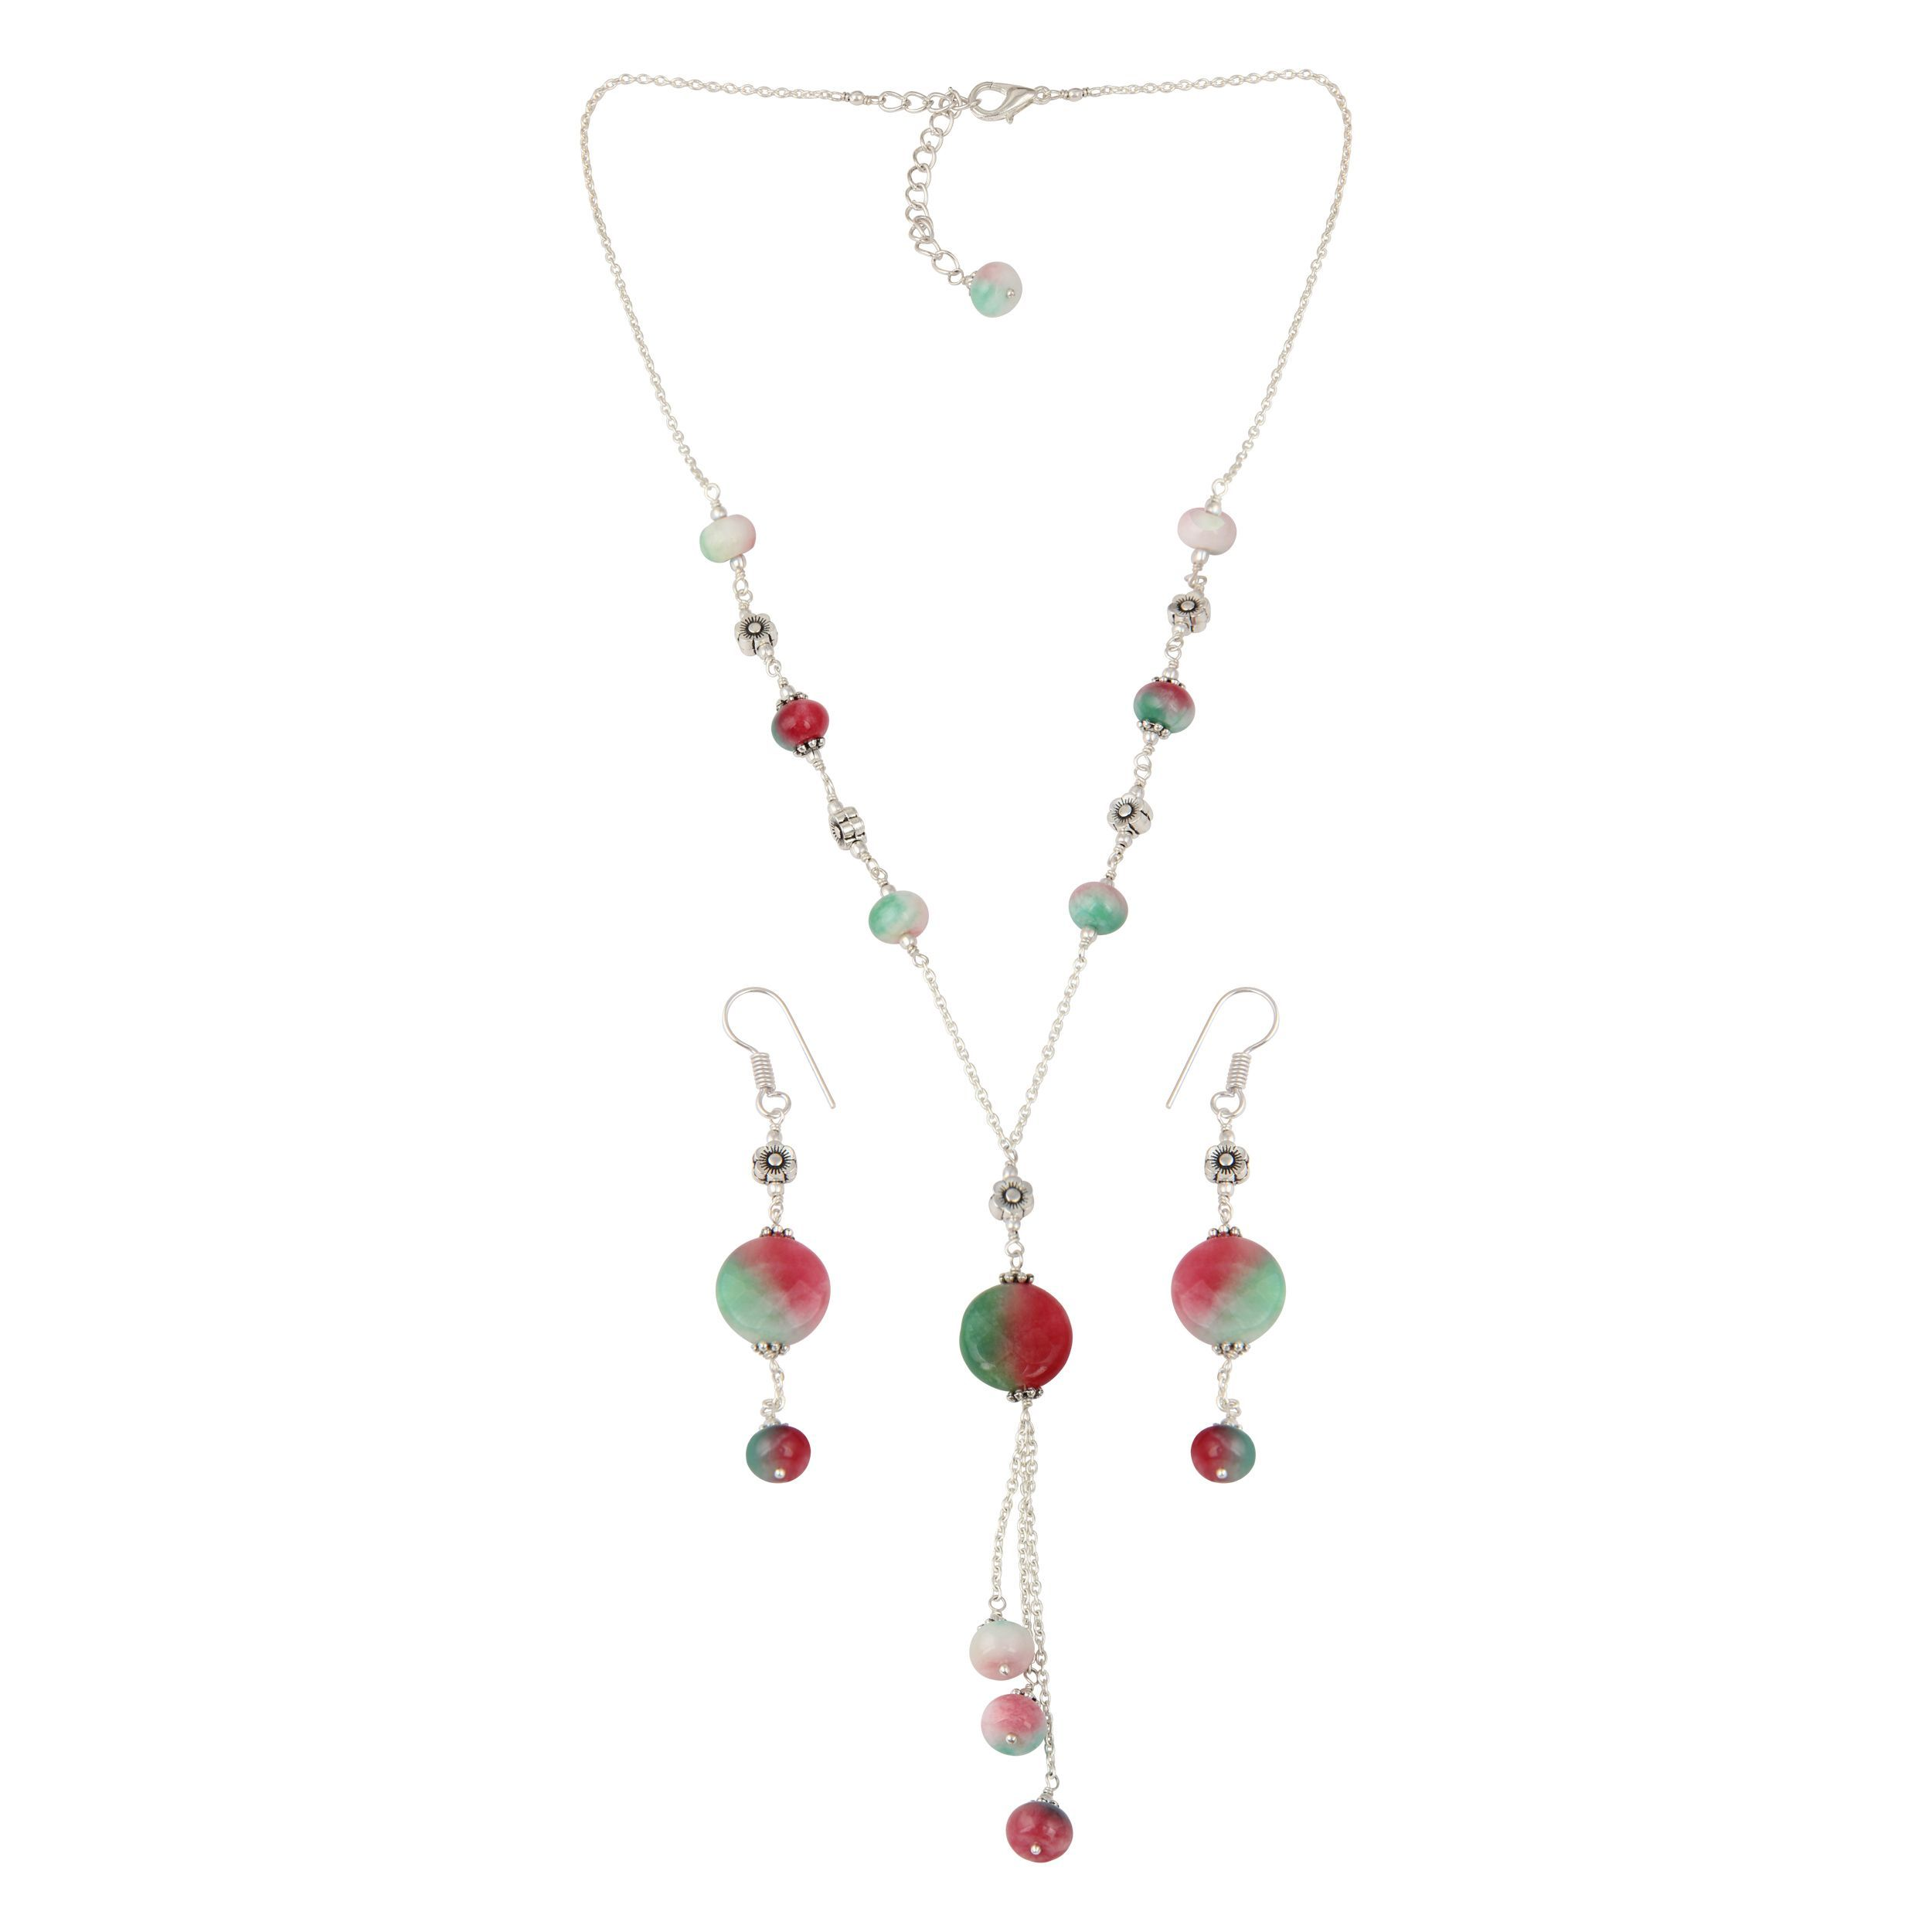 Pearlz ocean mystical dyed quartzite beaded necklace and earrings